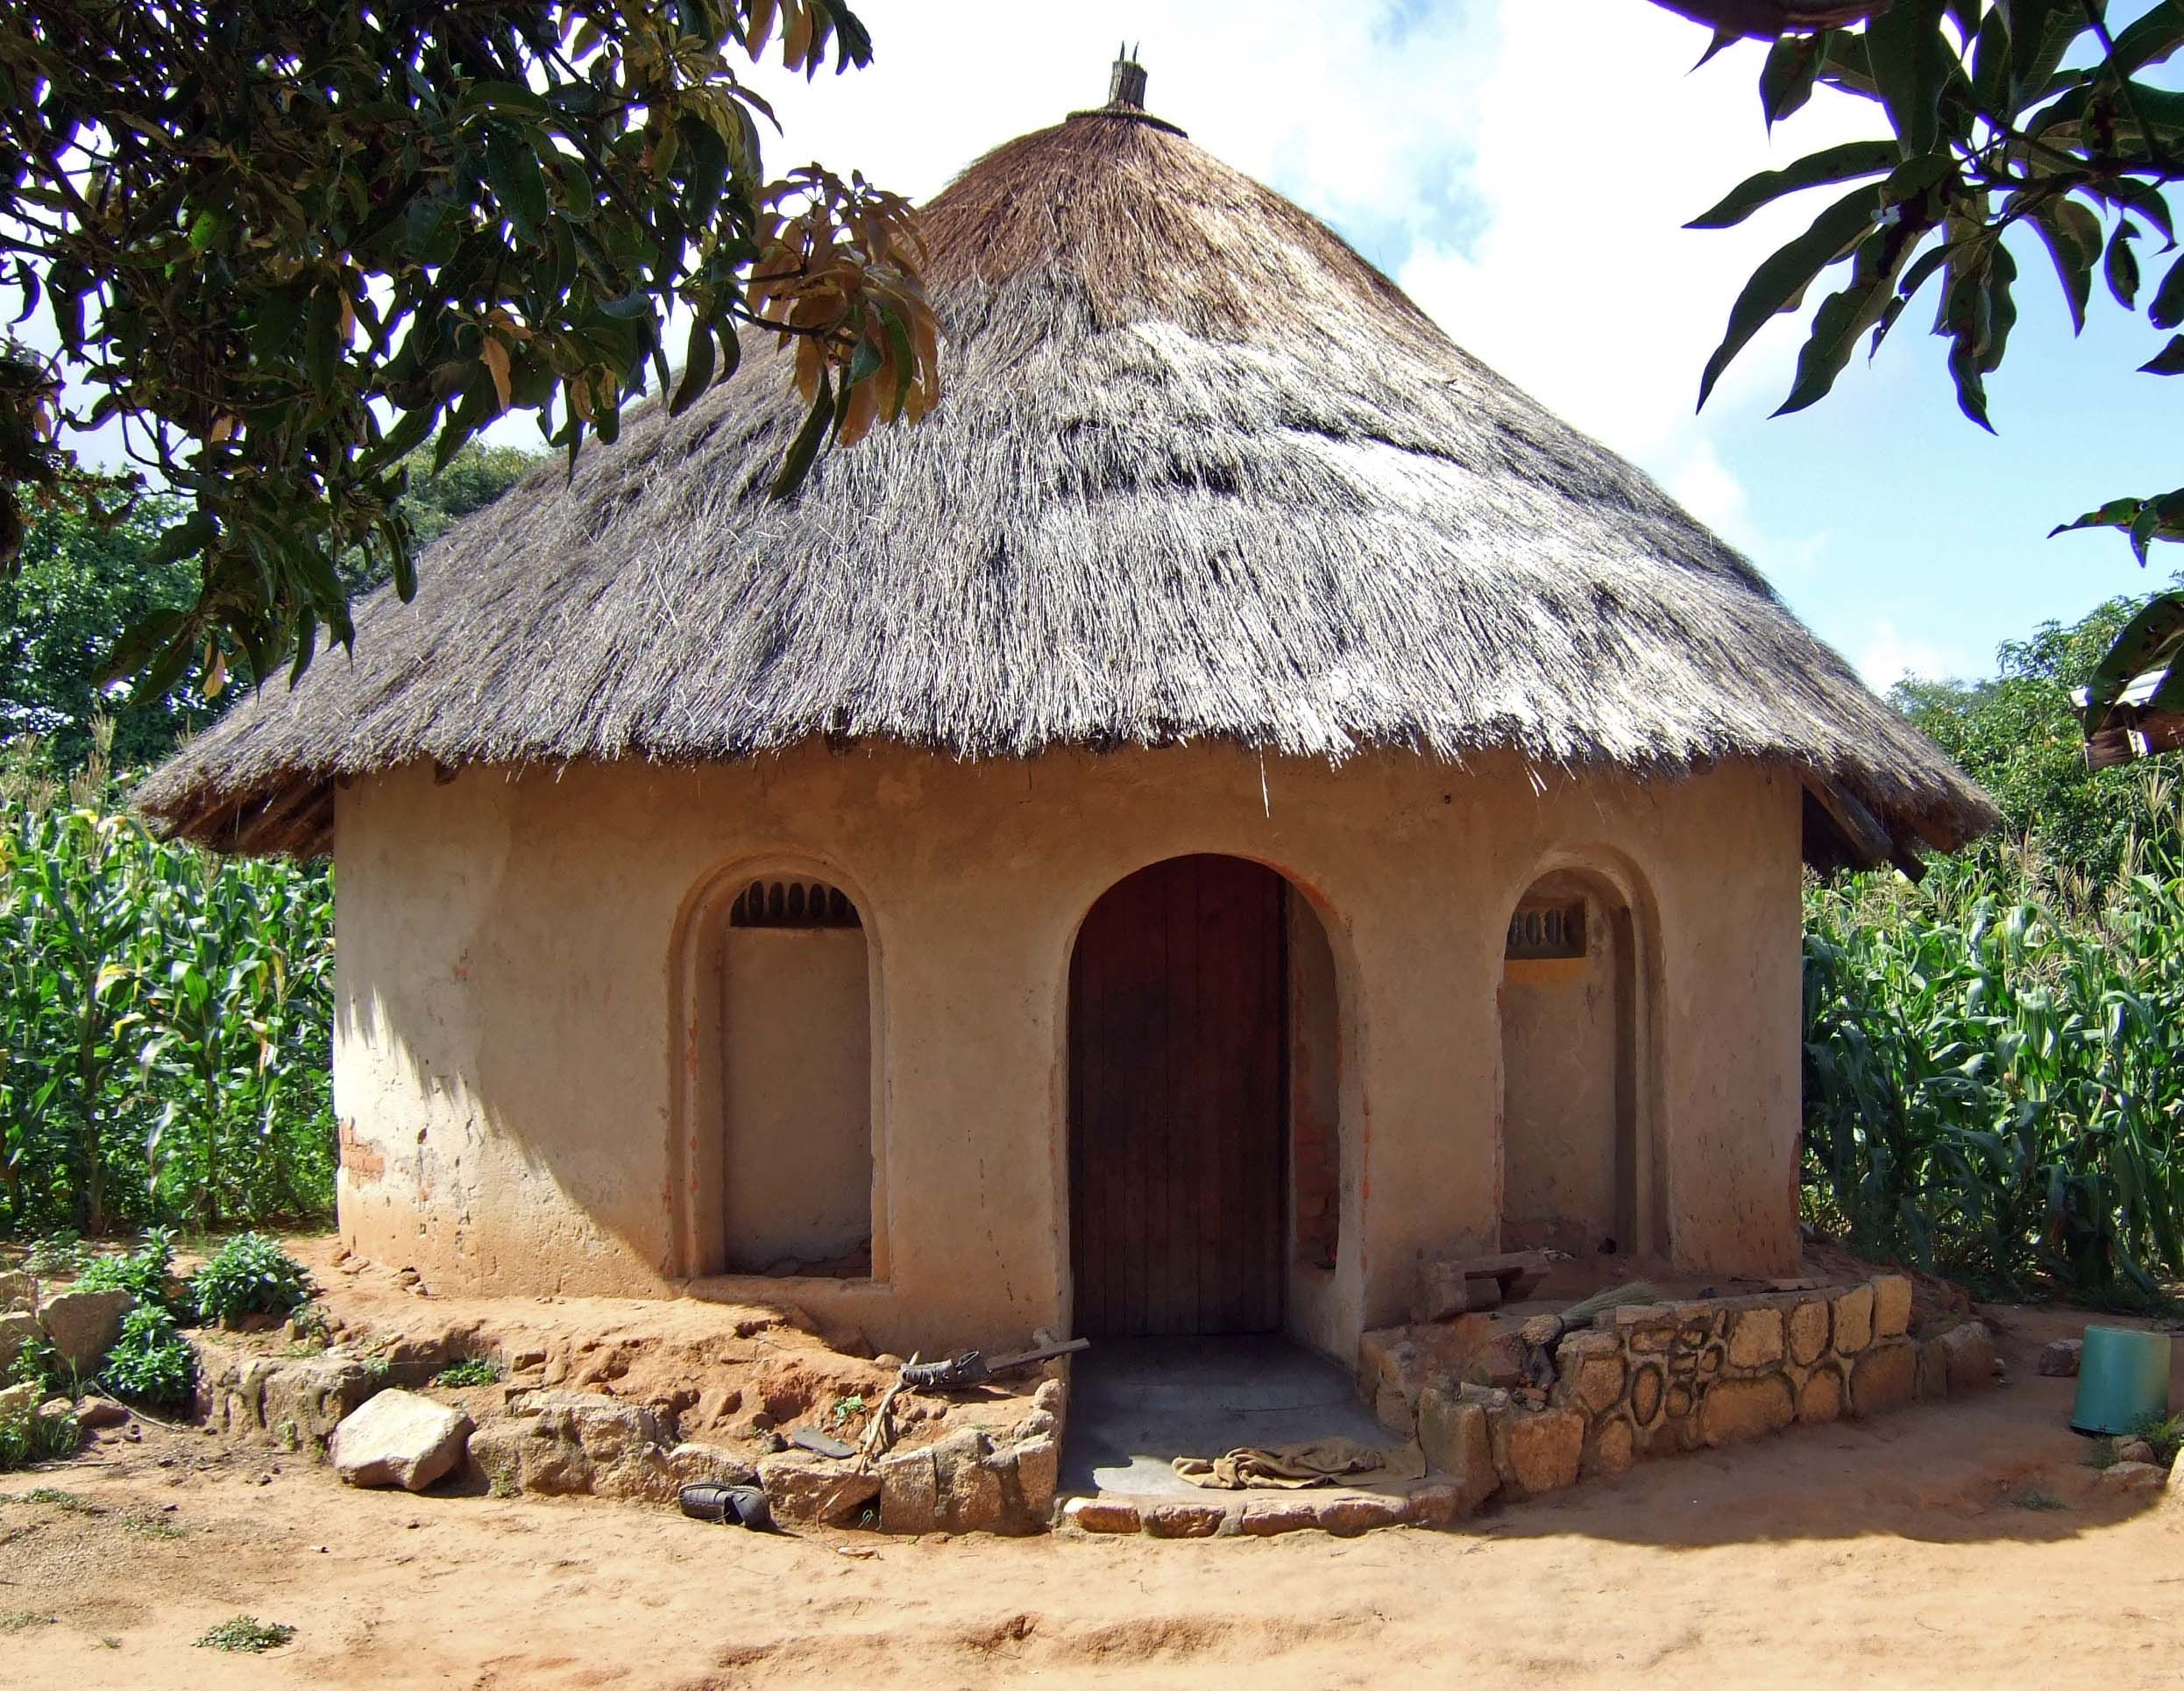 nice roundhouse design zimbabwe favorite places